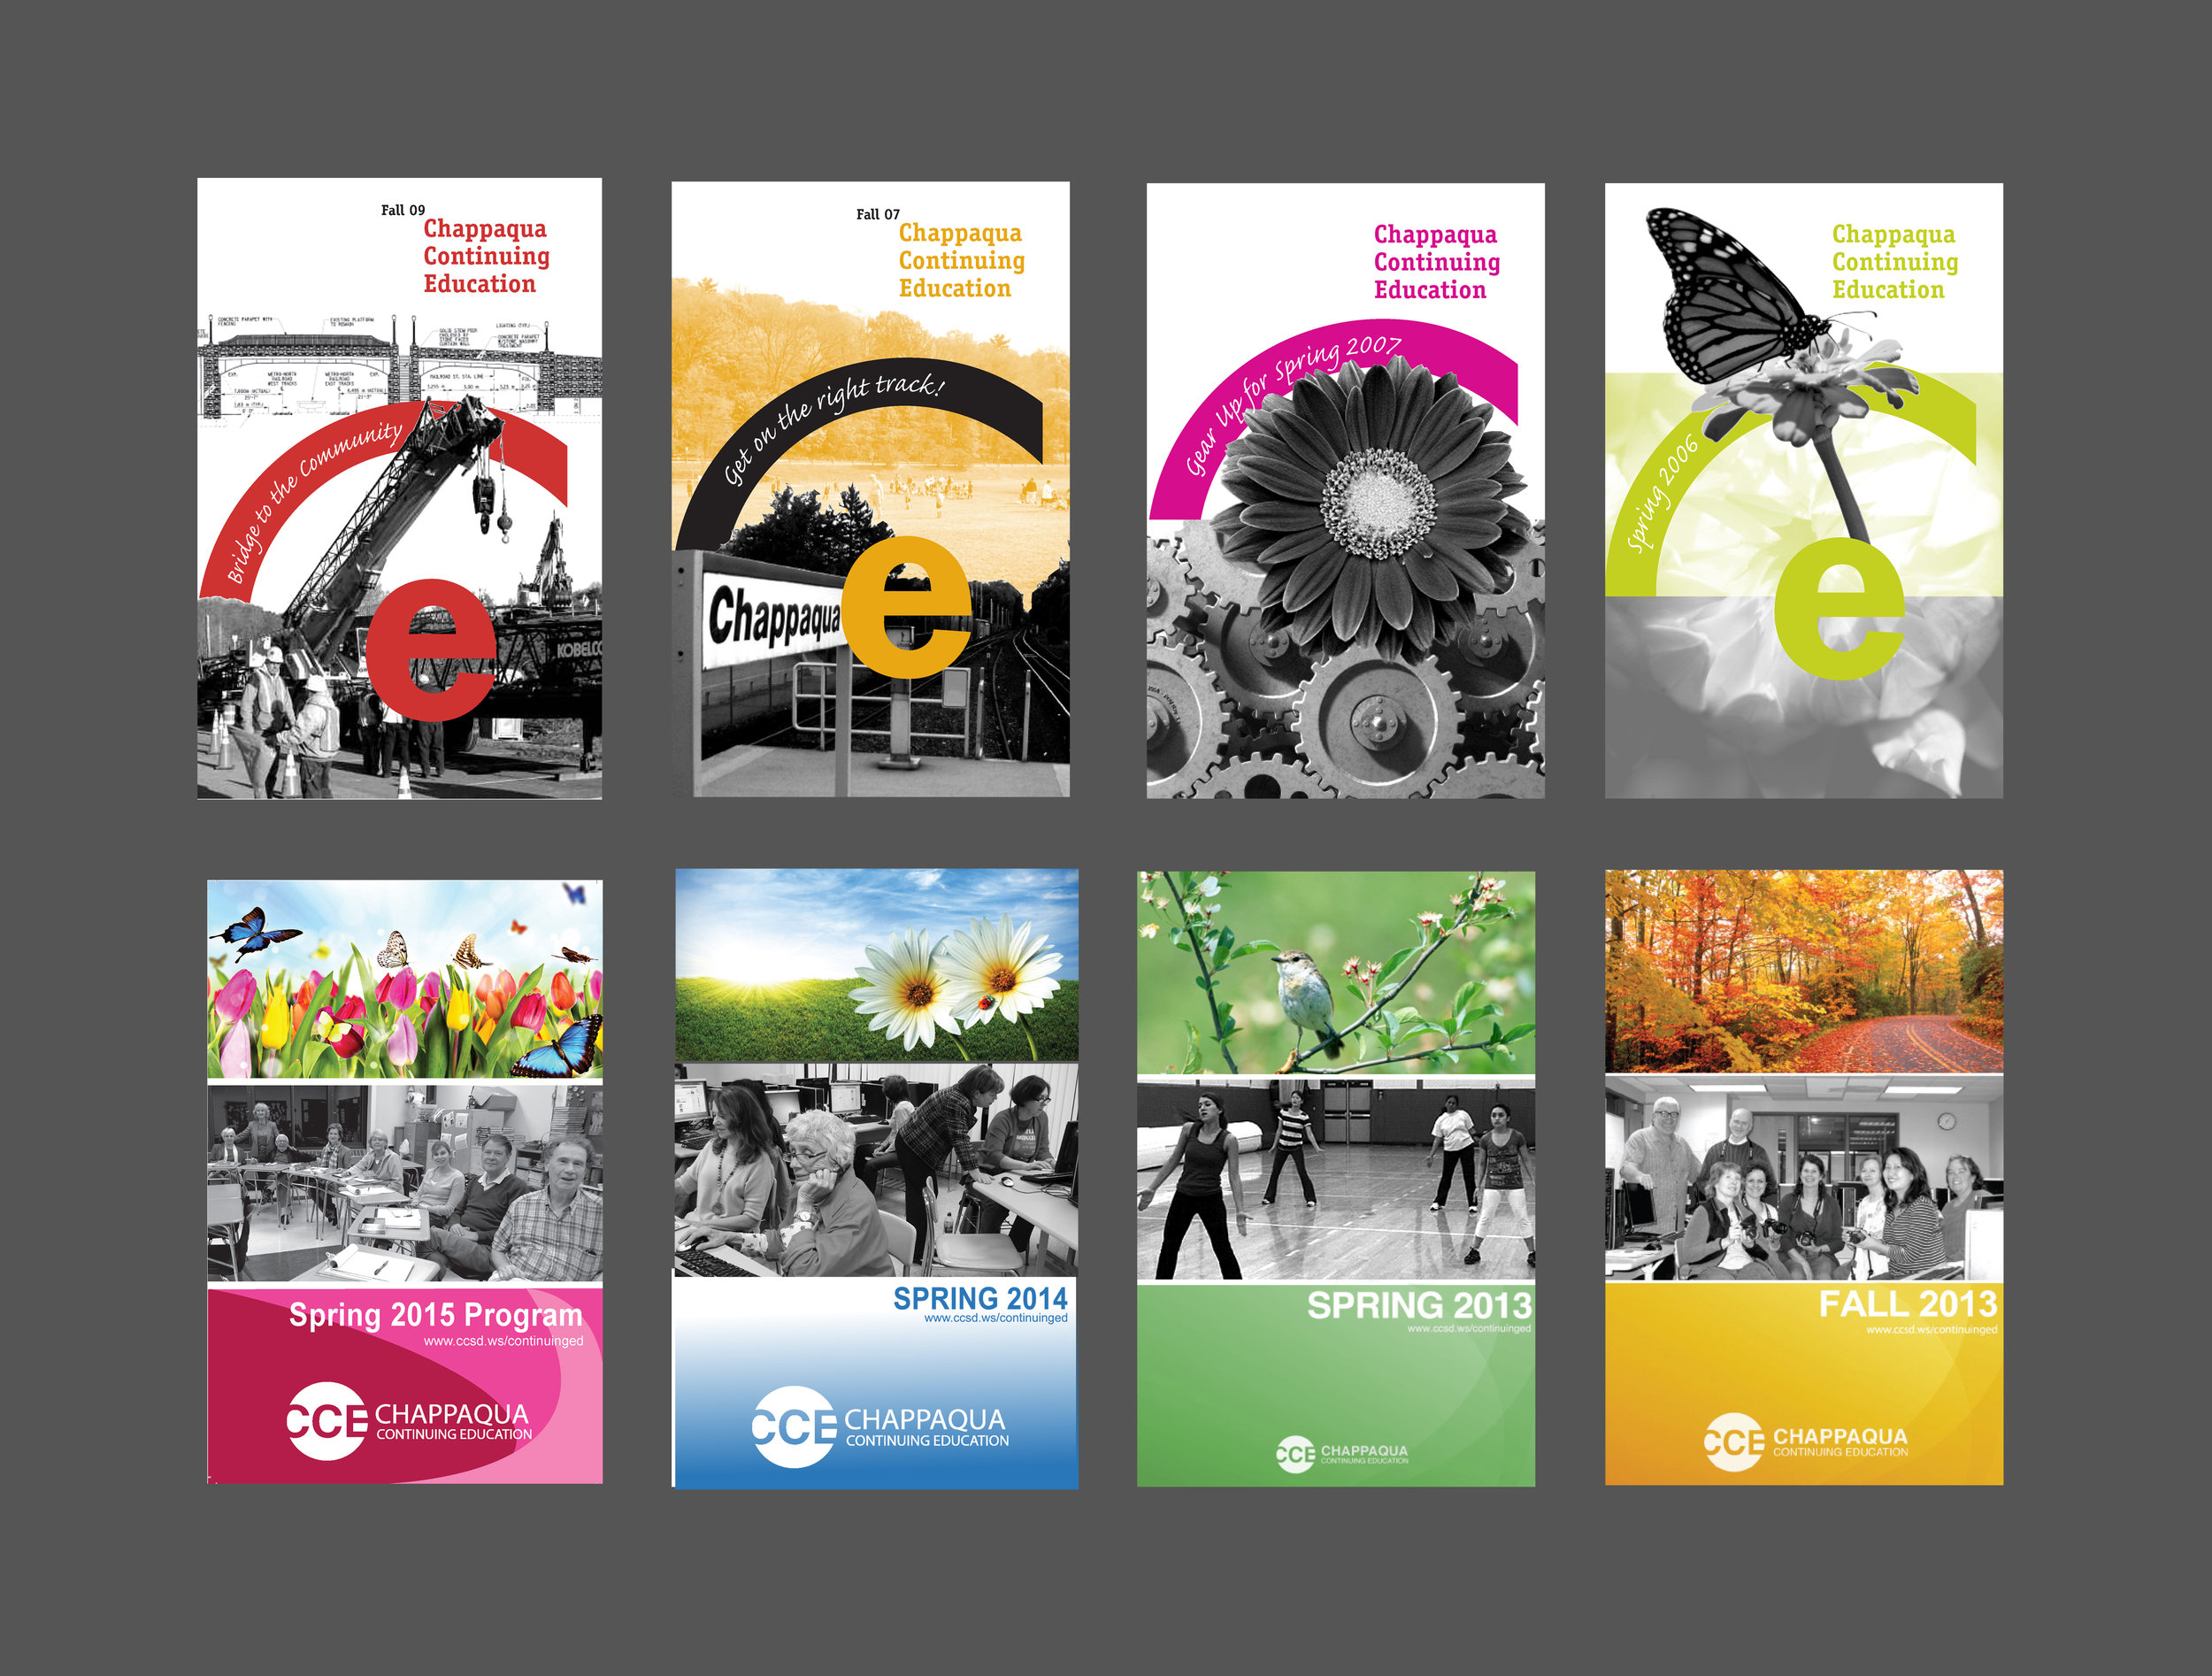 Program covers from 8 semesters of continuing education course offering brochures!